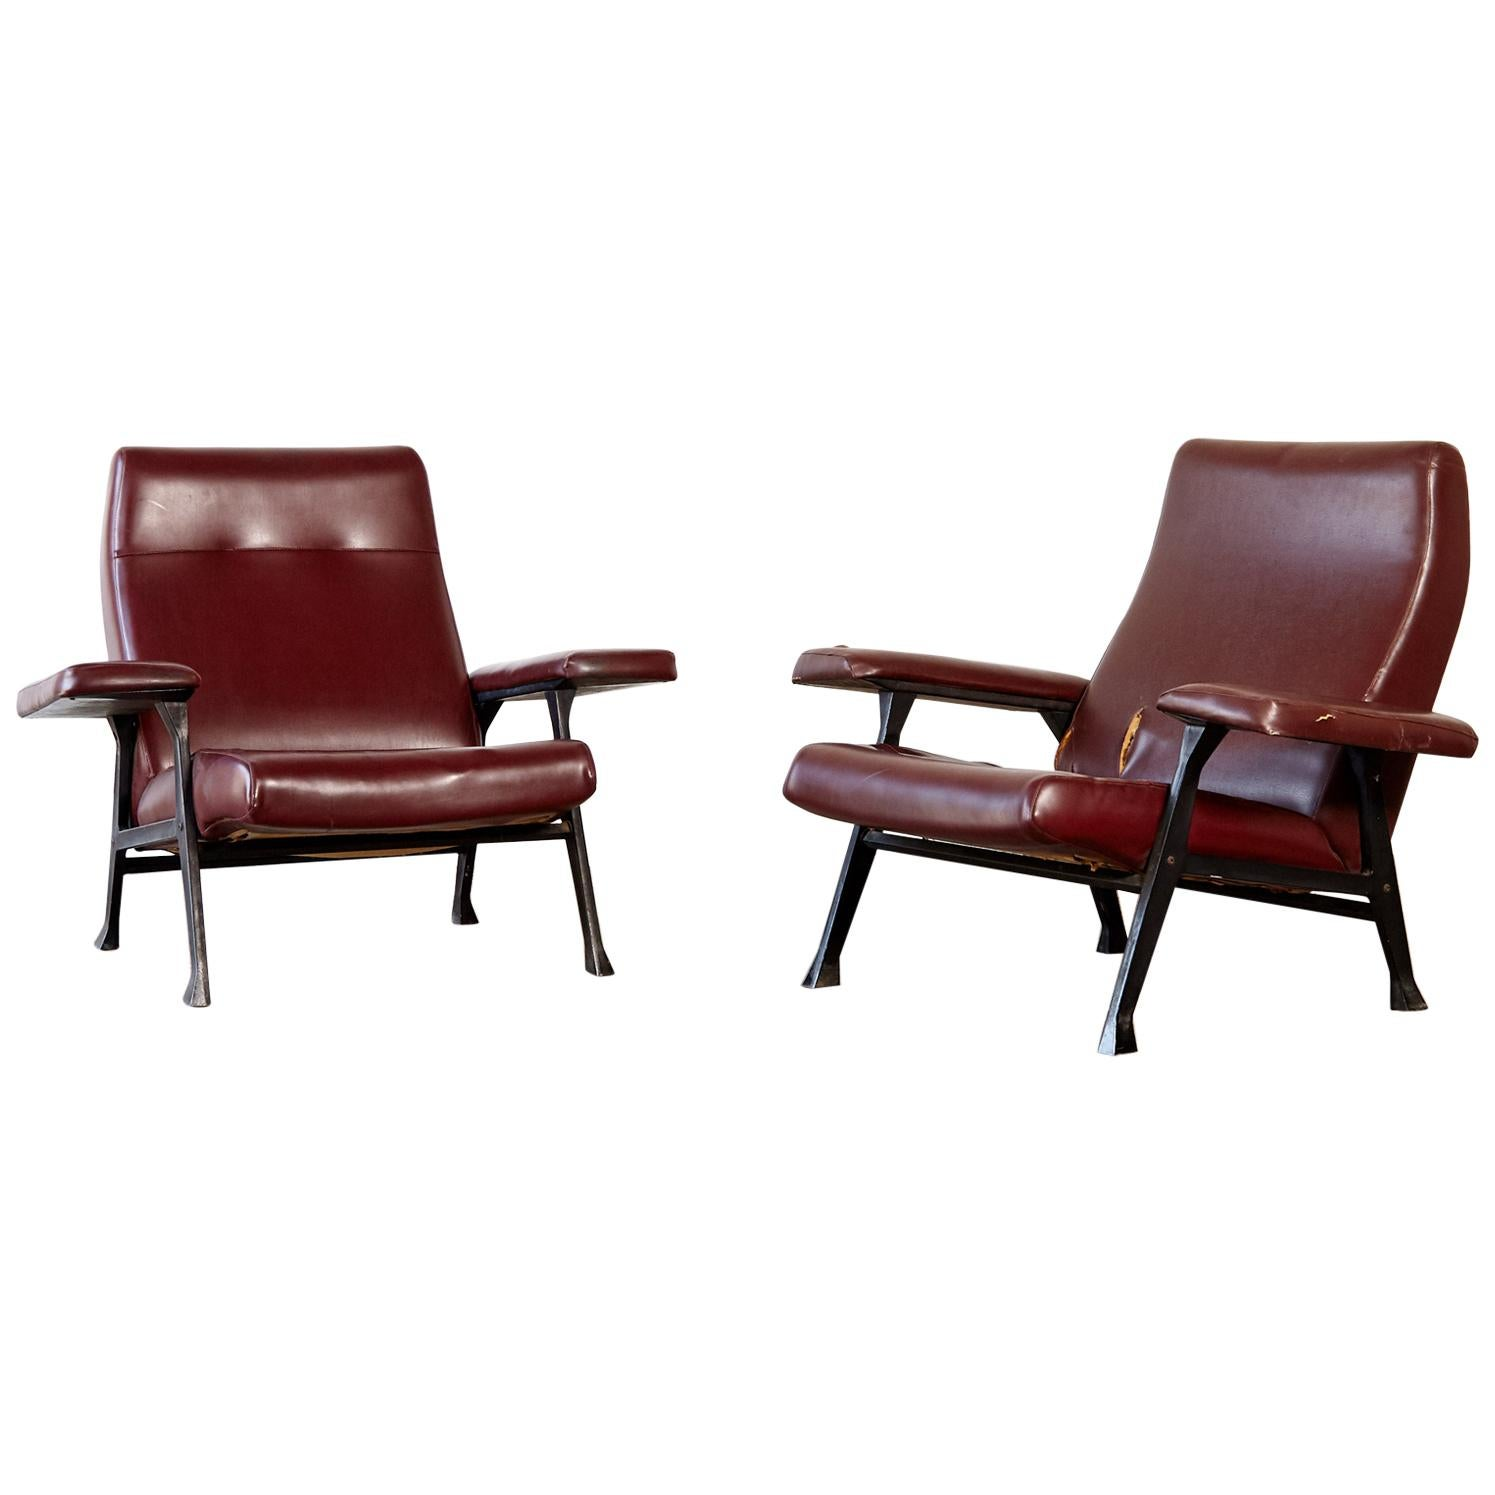 Rare Pair of Authentic 1950s Roberto Menghi Hall Chairs, Arflex, Italy